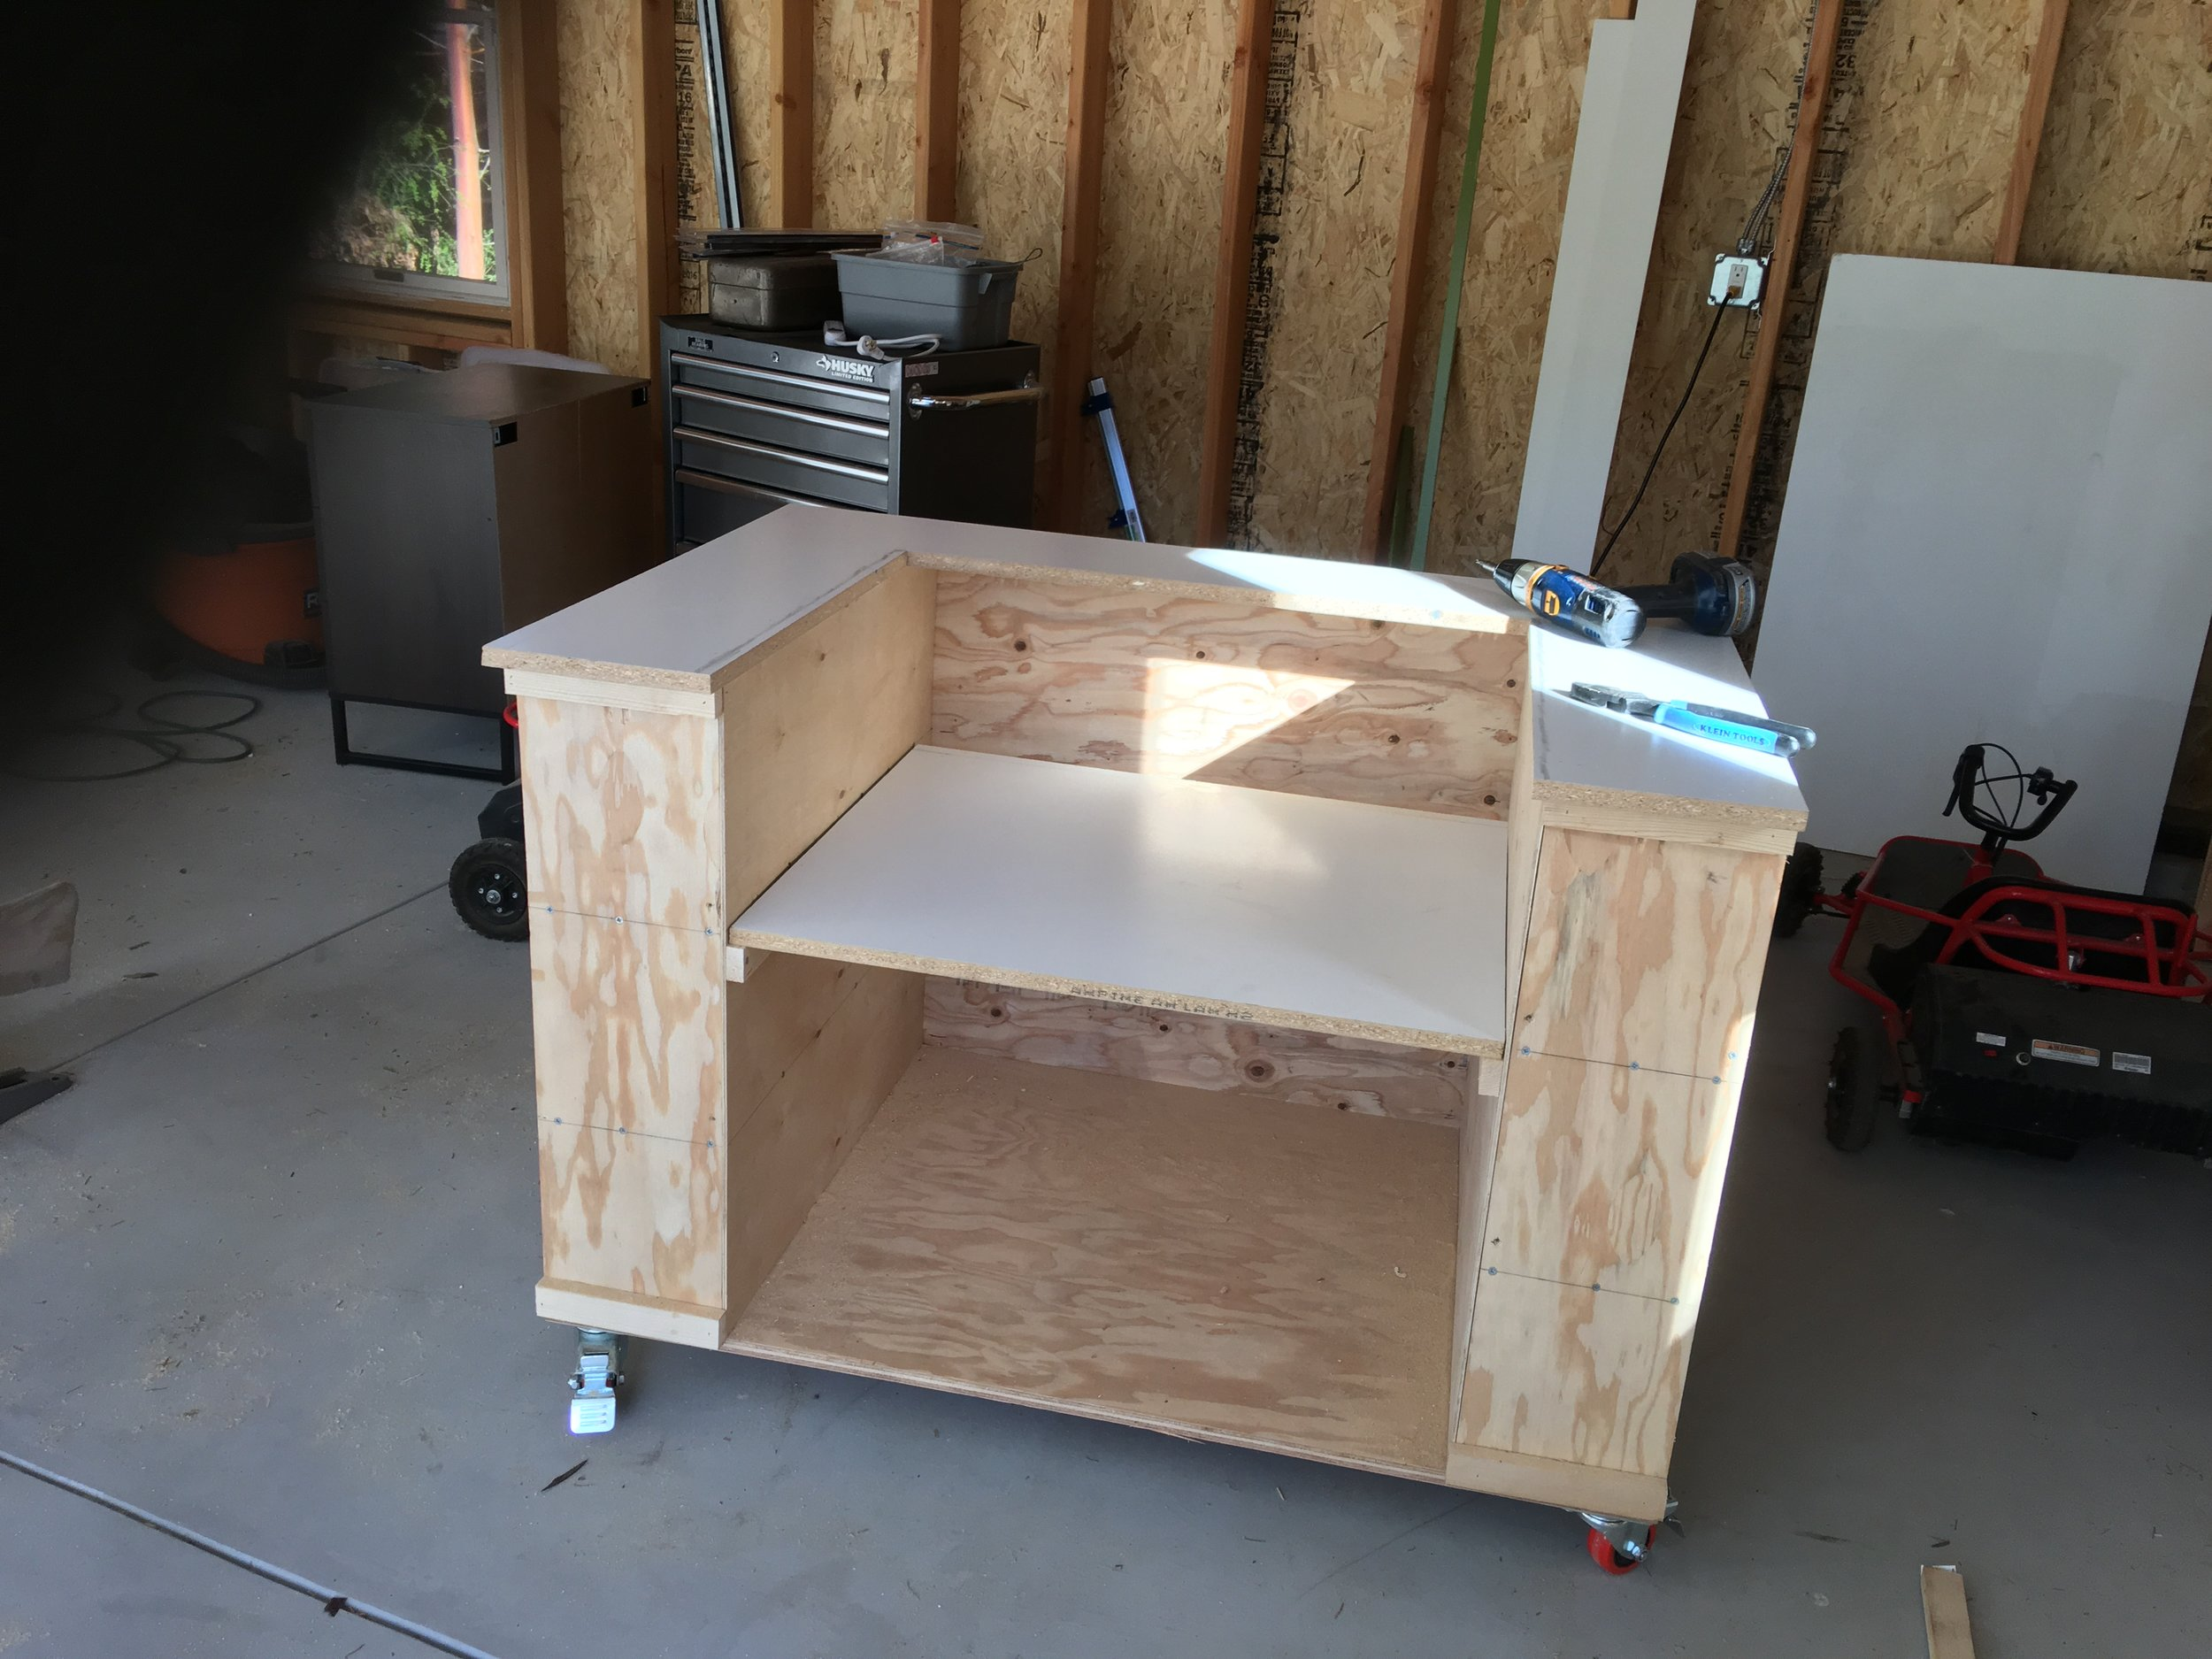 I used the cut out for the platform support for the table saw.